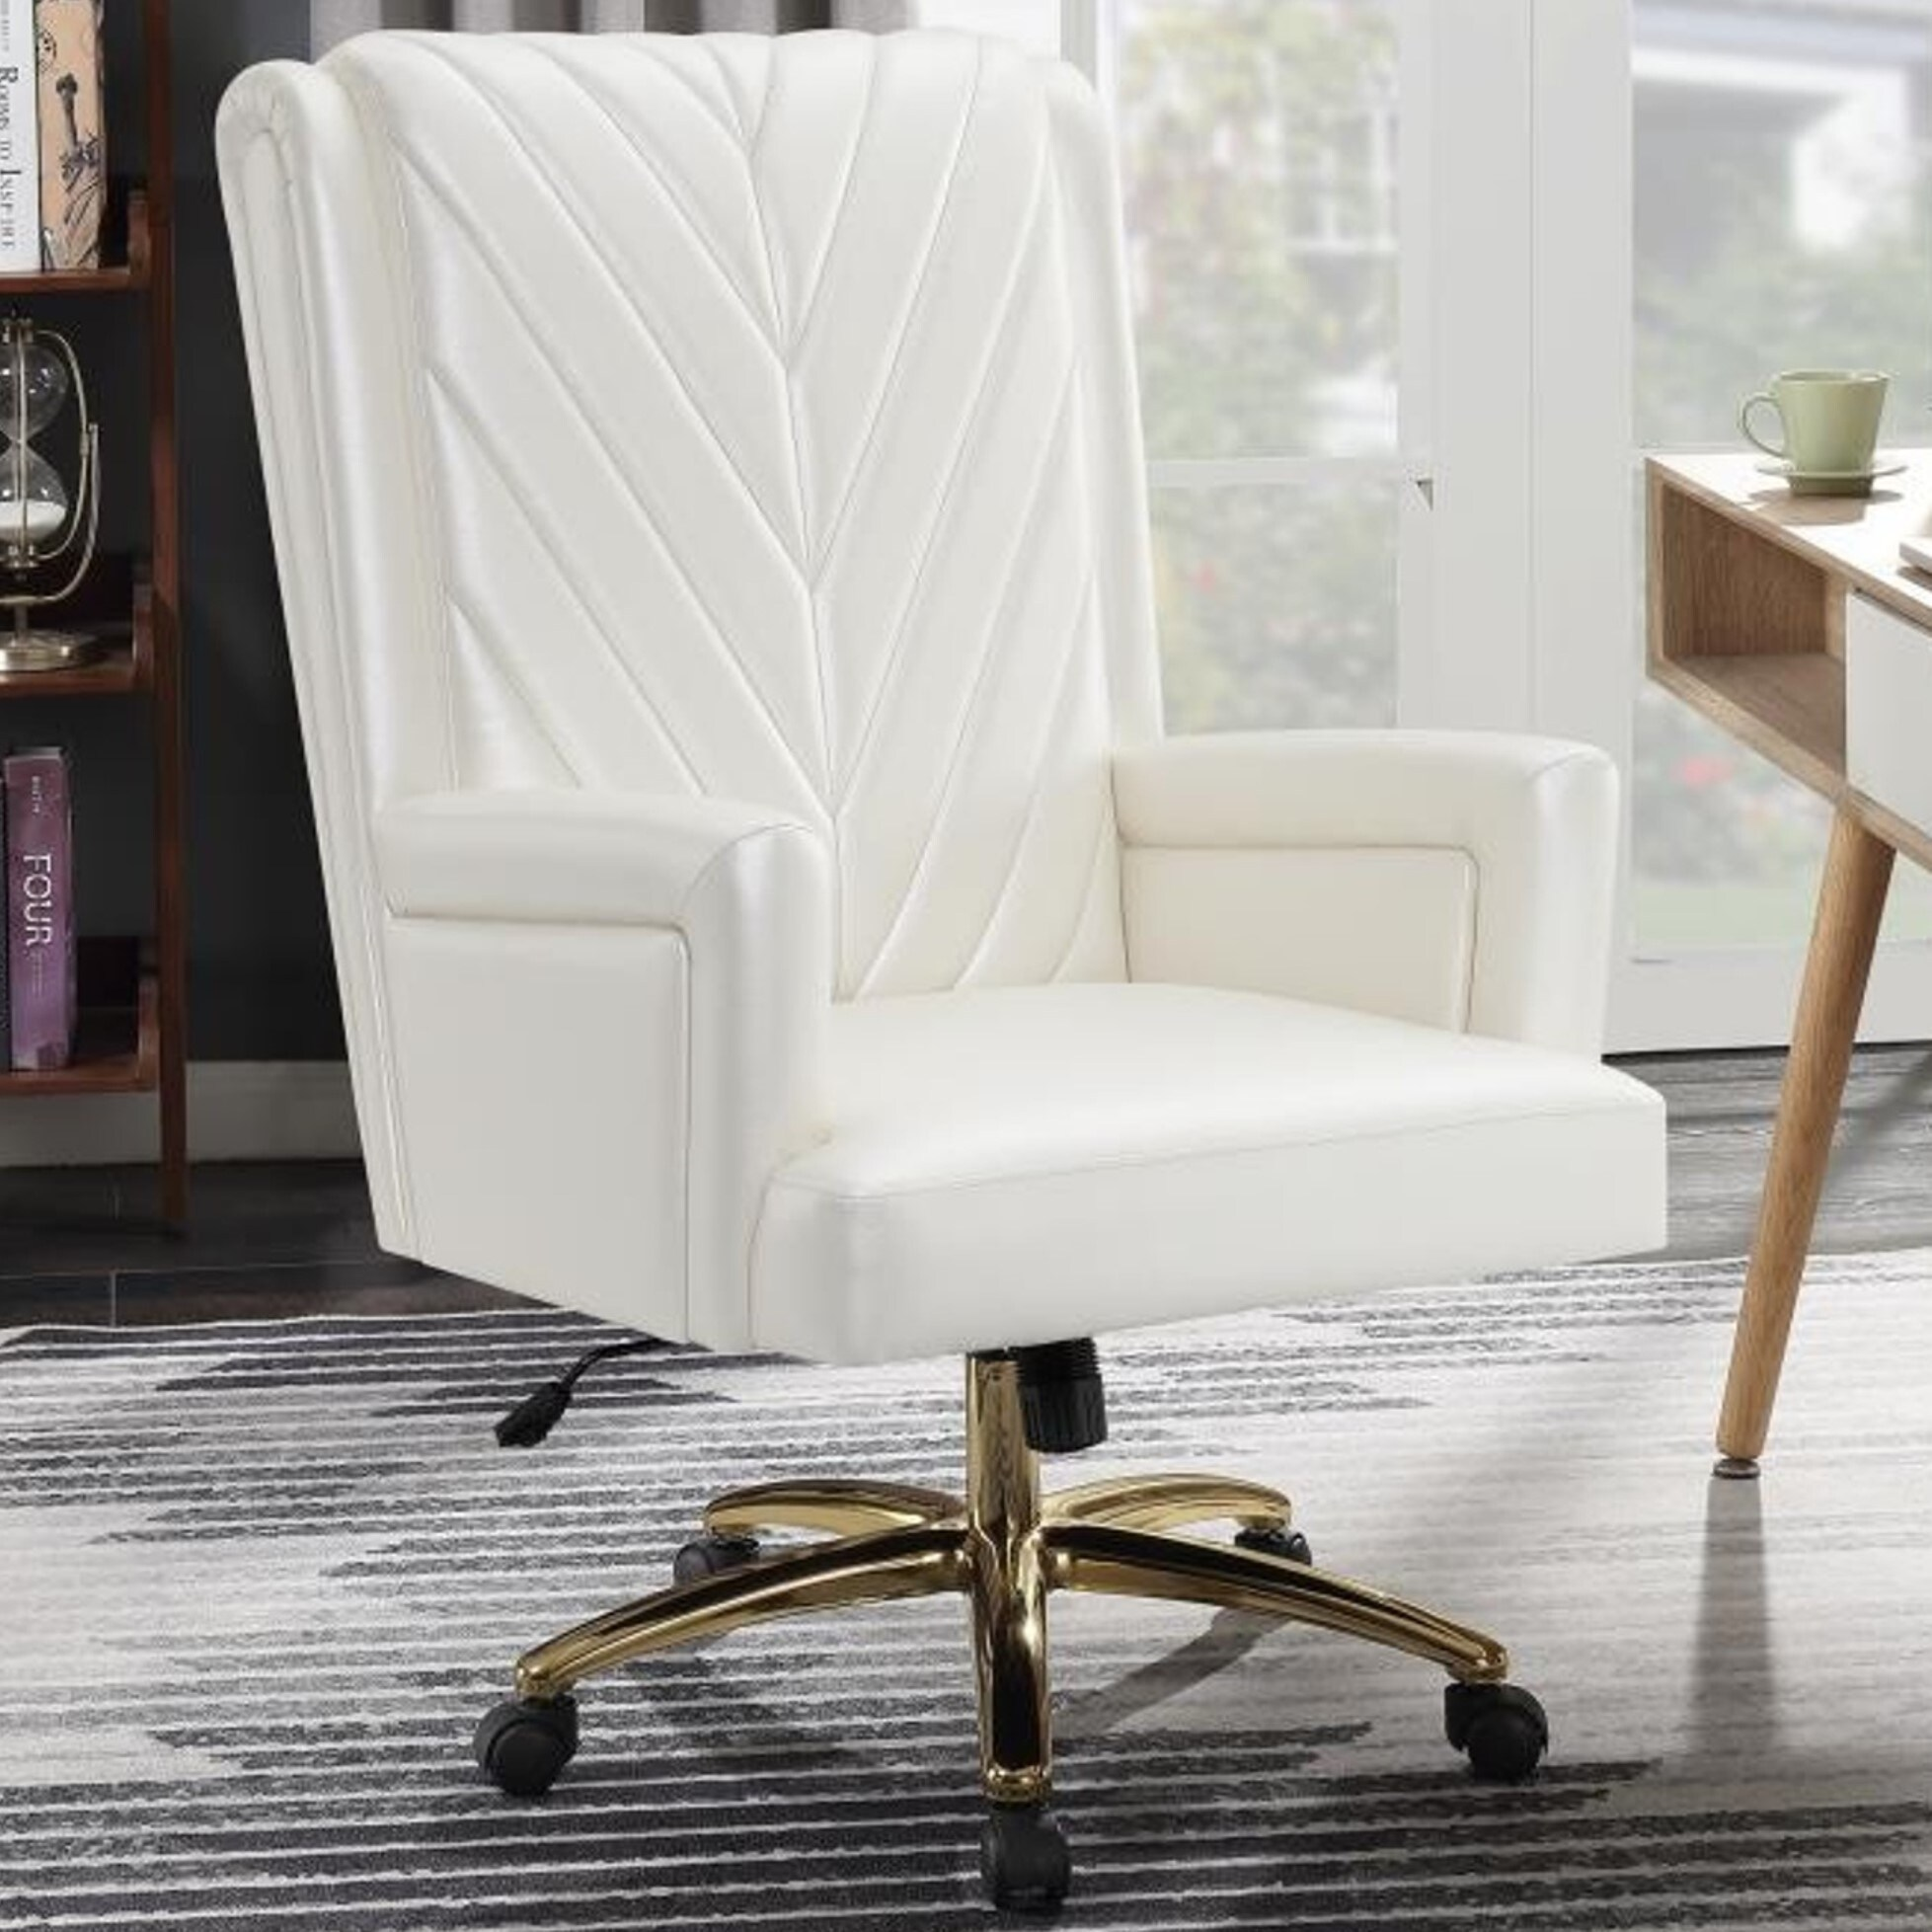 Plush Pearly White Executive Office Chair with Metal Brass Base